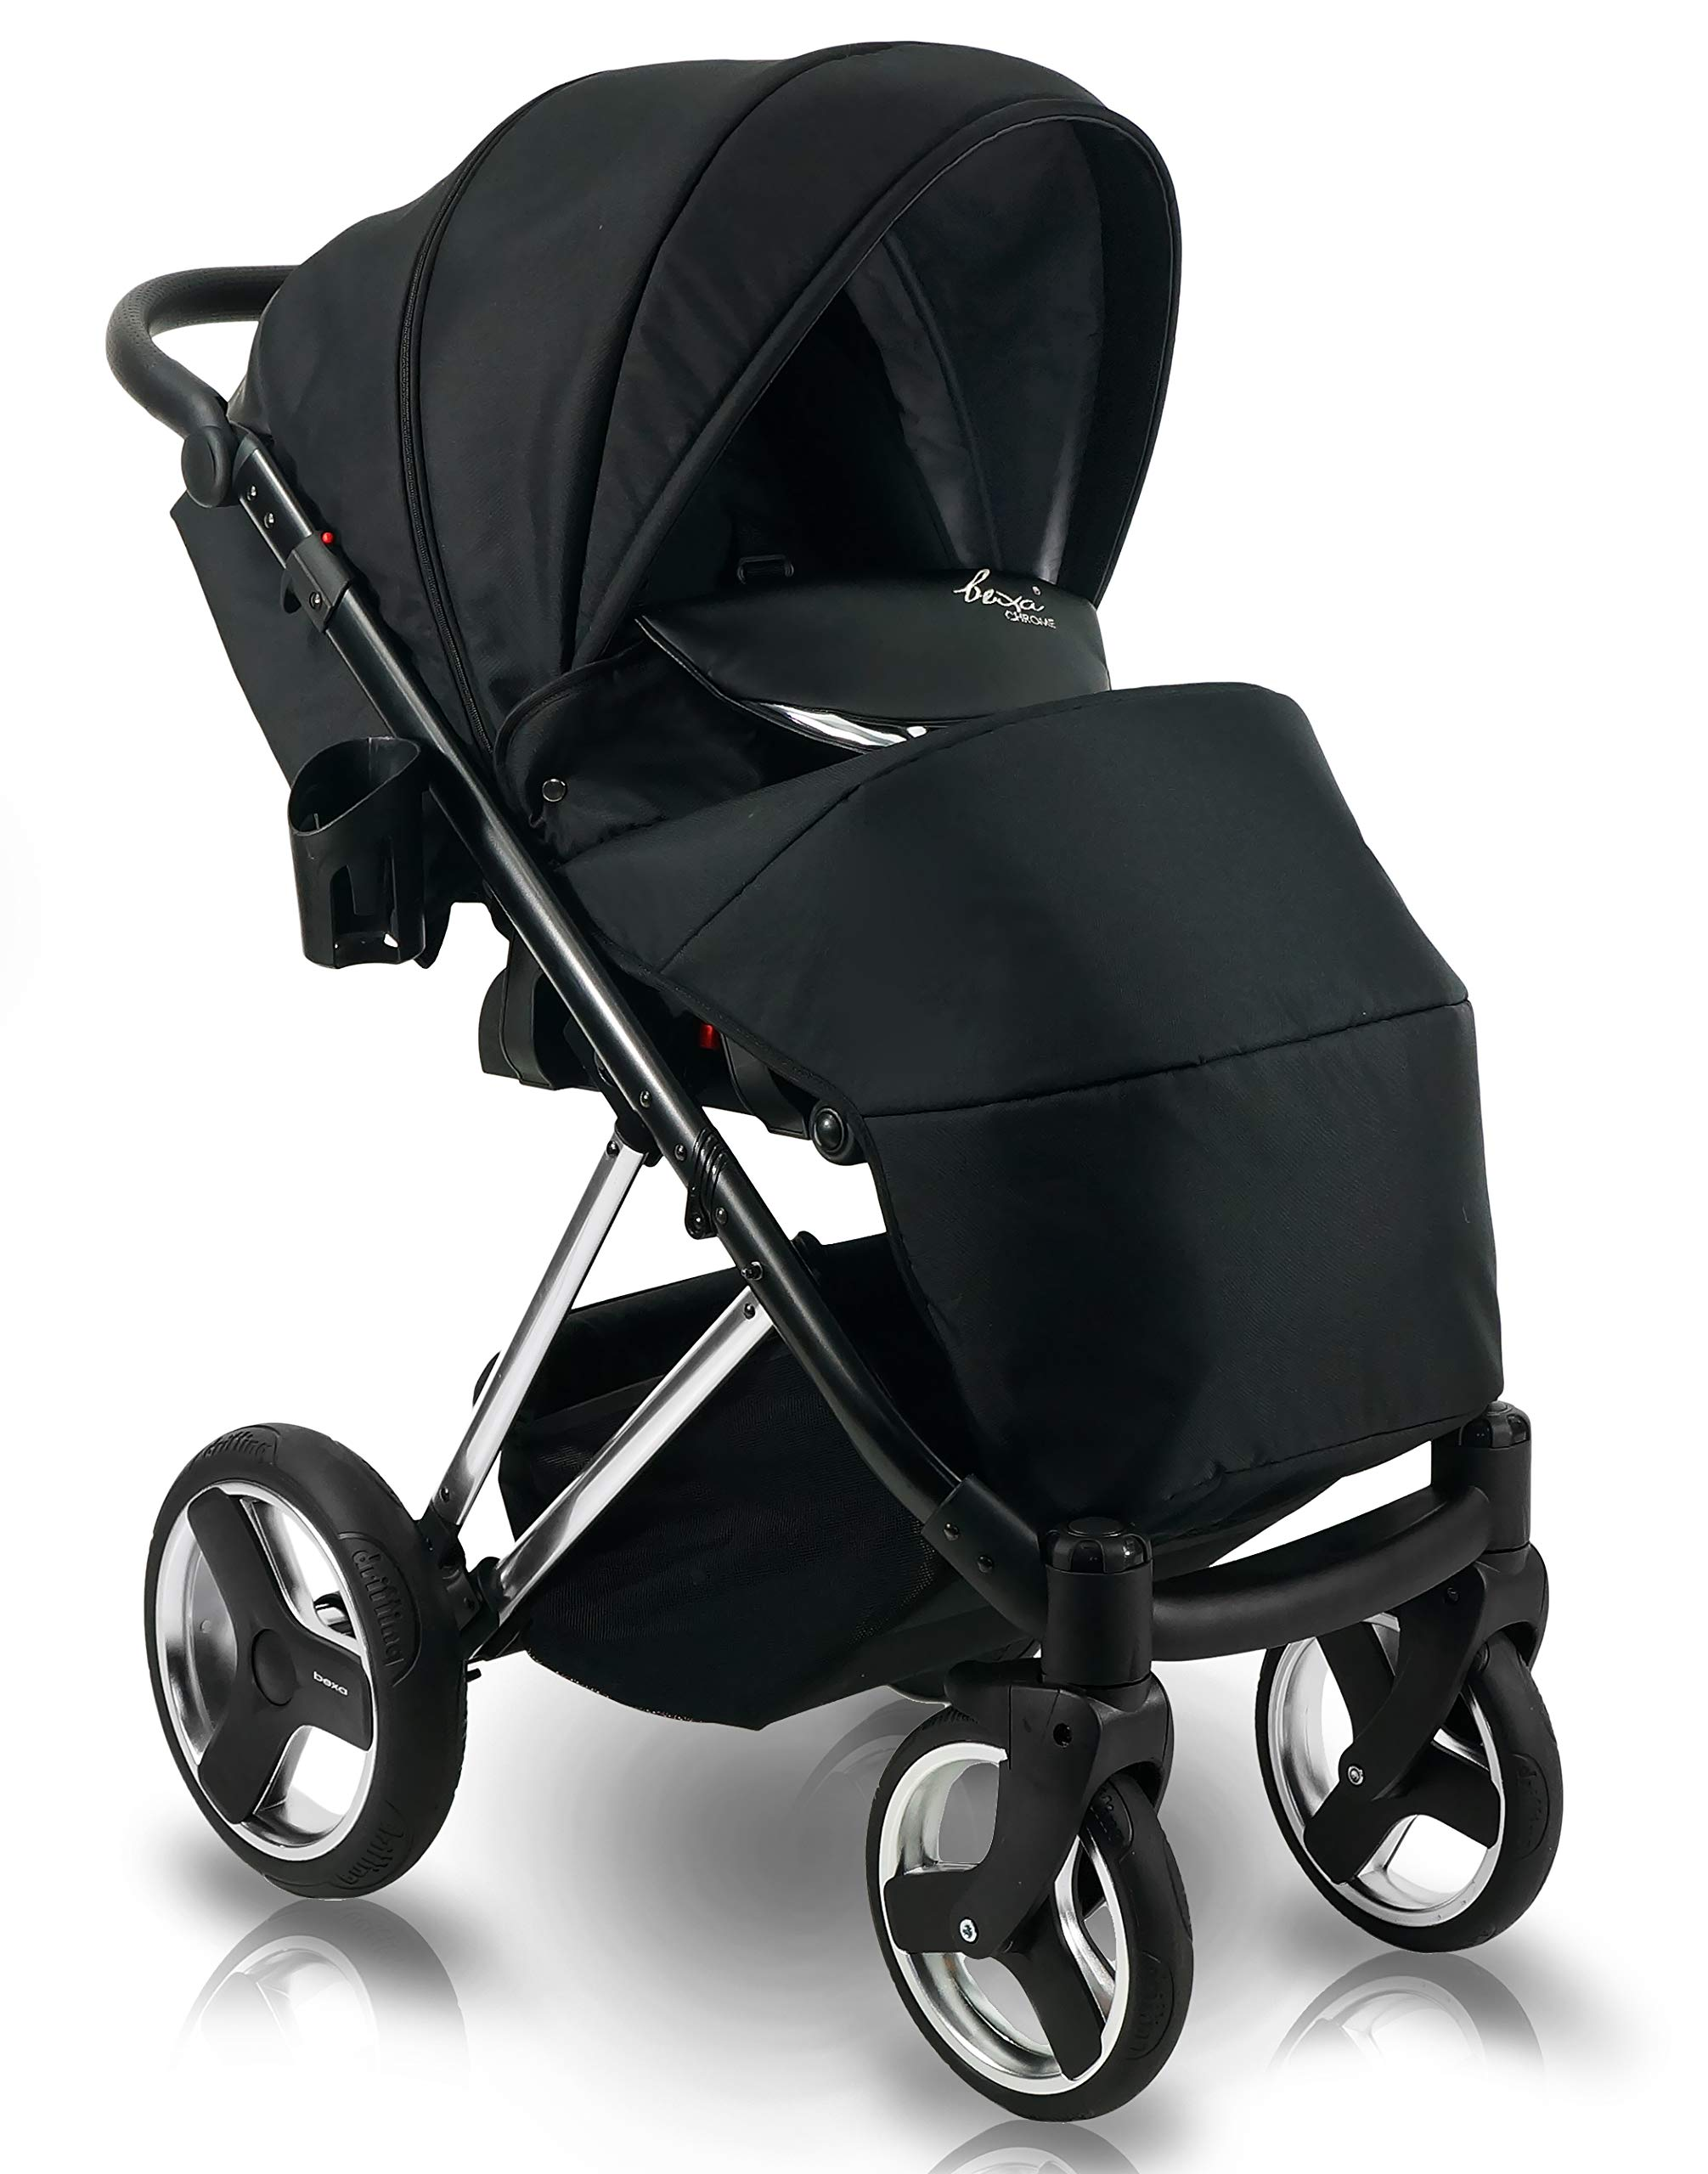 SaintBaby Stroller Buggy Baby seat Car seat Next II Gold Chrome Gold N1 4in1 with Isofix SaintBaby If you want the black frame instead of the gold frame, please inform us after the purchase. 3in1 or 2in1 Selectable. At 3in1 you will also receive the car seat (baby seat). Of course you get the baby tub (classic pram) as well as the buggy attachment (sports seat) no matter if 2in1 or 3in1. The car naturally complies with the EU safety standard EN1888. During production and before shipment, each wagon is carefully inspected so that you can be sure you have one of the best wagons. Saintbaby stands for all-in-one carefree packages, so you will also receive a diaper bag in the same colour as the car as well as rain and insect protection free of charge. With all the colours of this pram you will find the pram of your dreams. 6